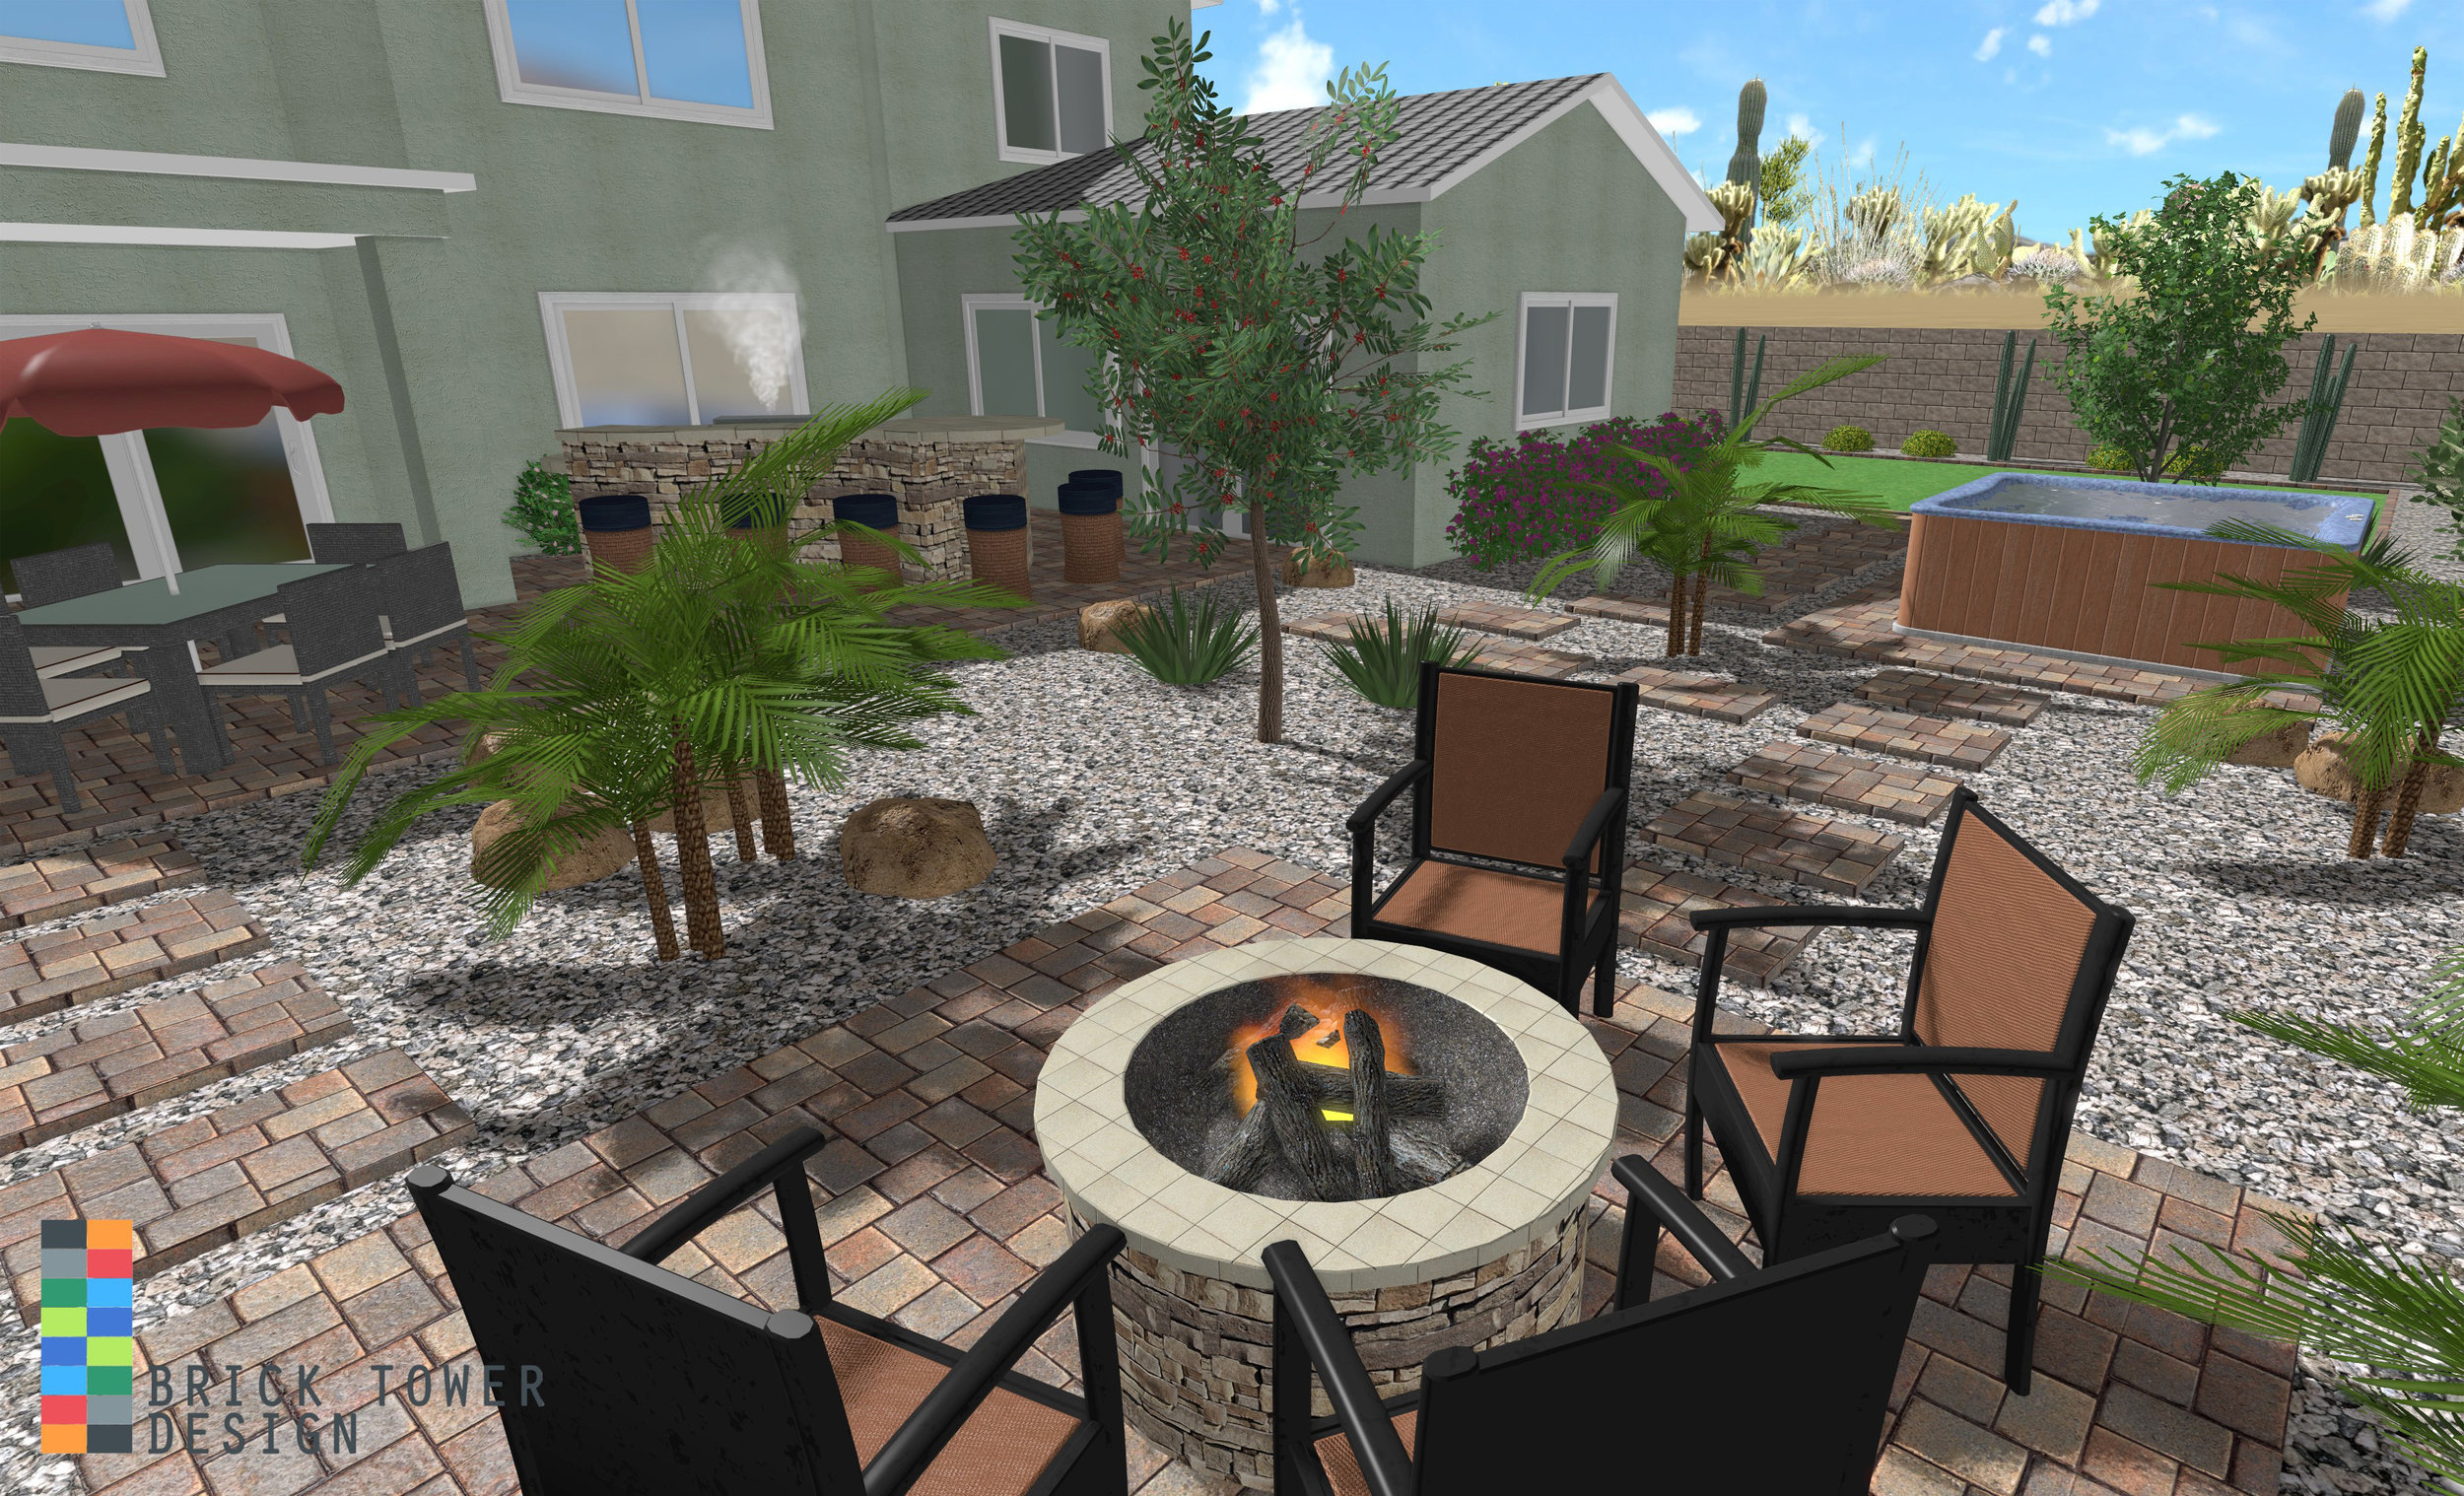 Show your customers more than just a swimming pool. Give them a good look at the rest of their landscape, with custom-built features like plants, fire pits, & BBQs. If you can build it, we can show it in our renderings.